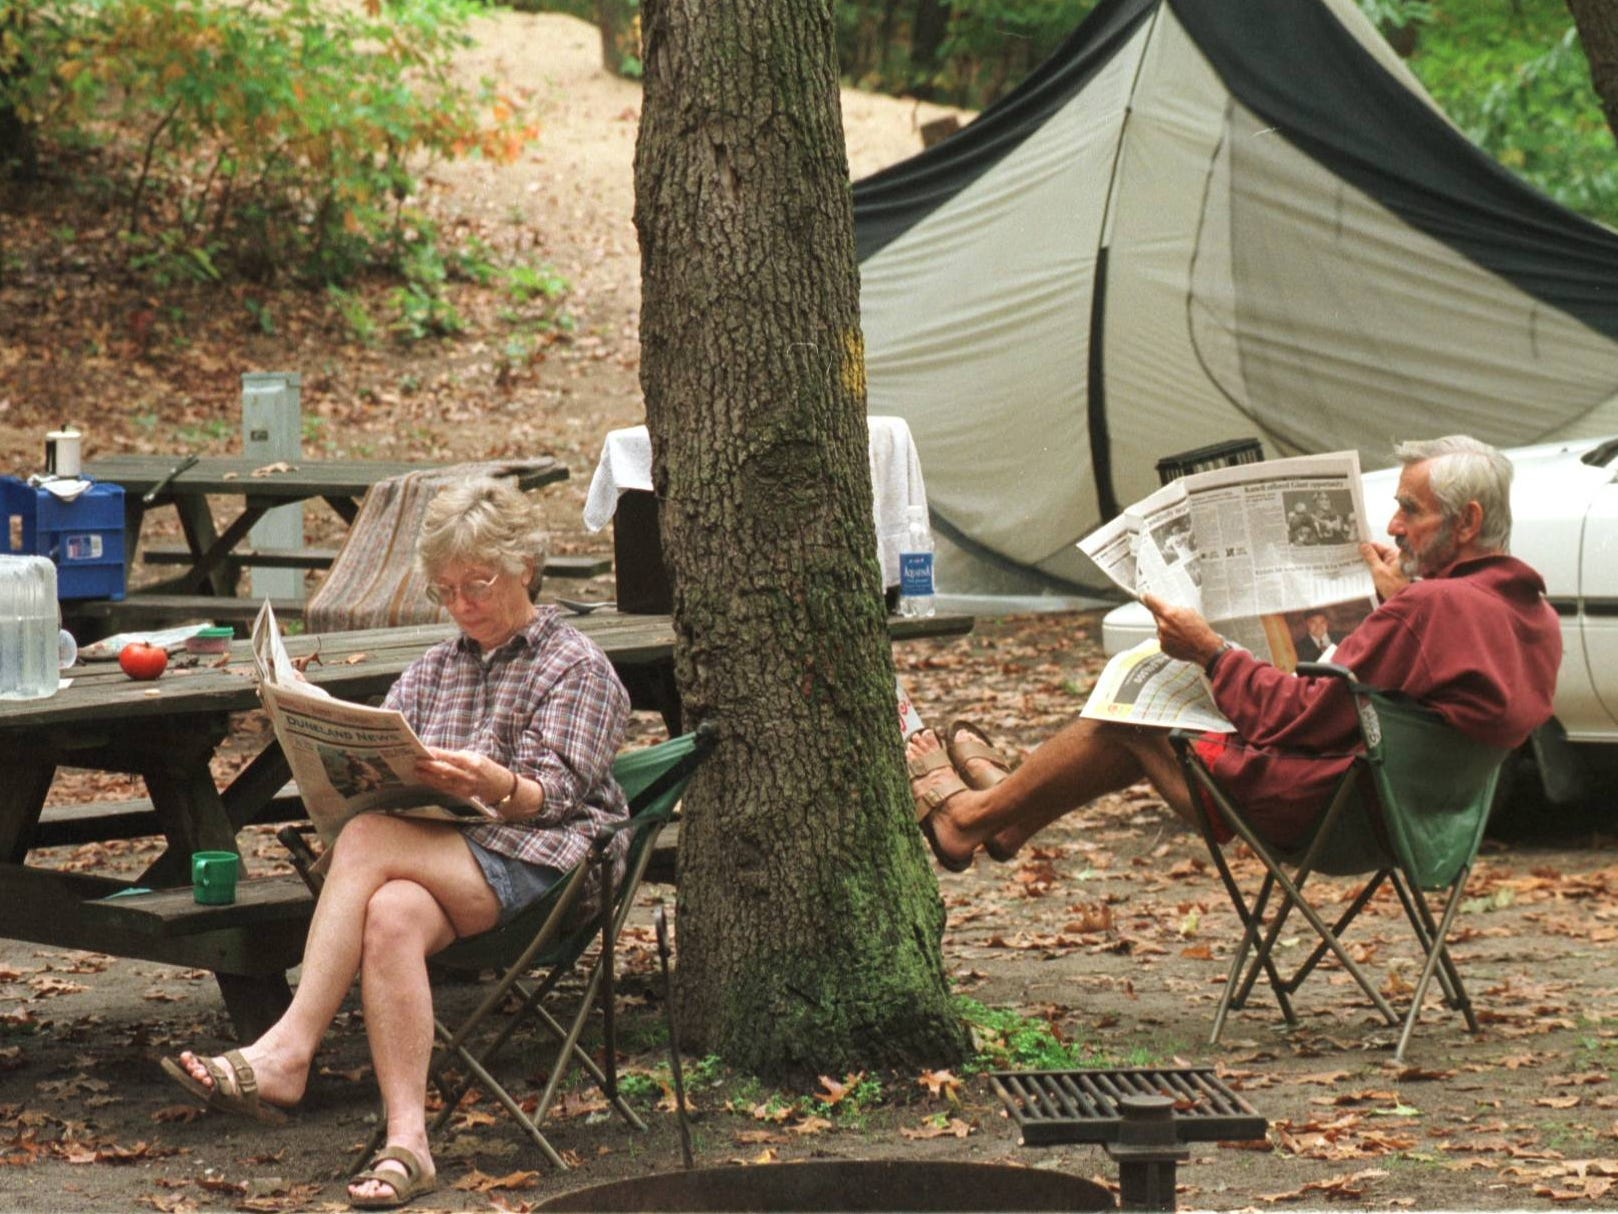 Irene and Cal Couch of Fort Wayne have been coming to the Indiana Dunes State Park to camp for years. On this morning they sit reading newspapers, while waiting for their camping gear to dry out from a soaking morning rain.